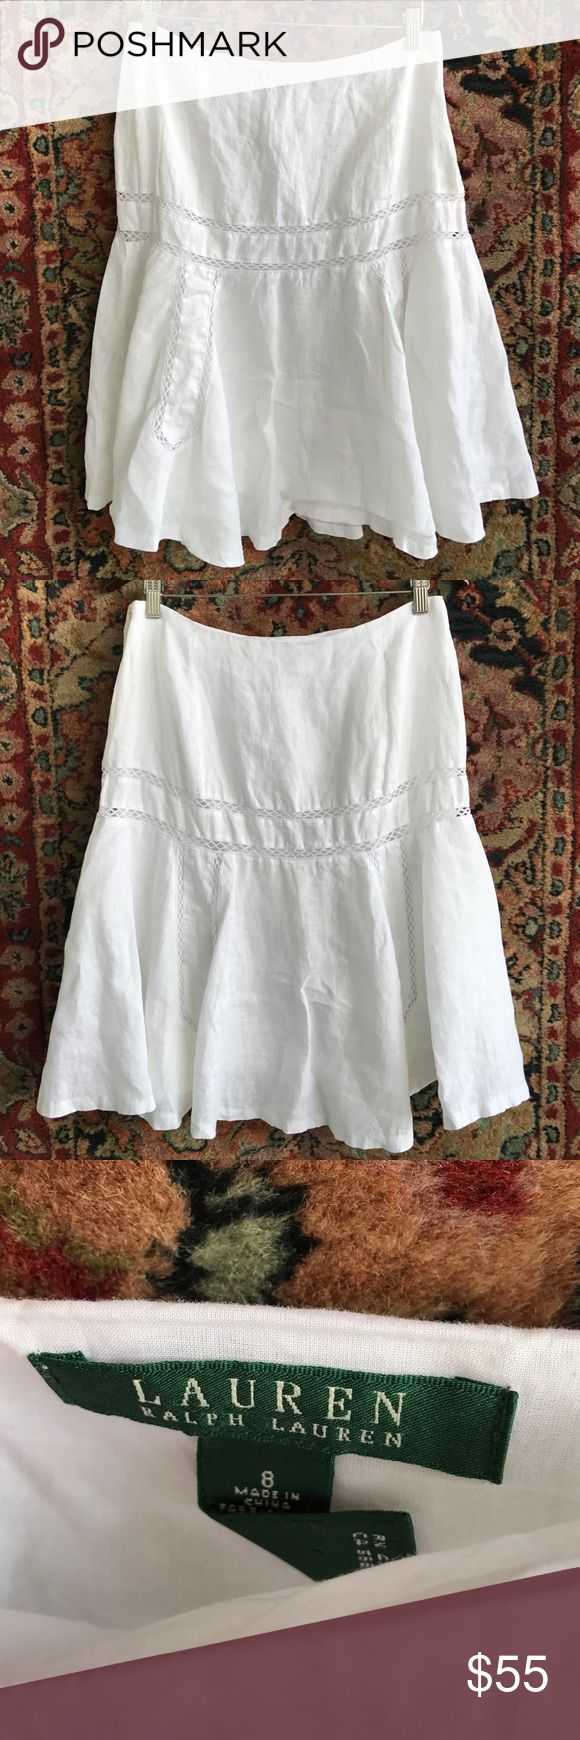 """Lauren Ralph Lauren Linen Trumpet Skirt Elegance and feels like luxury. Lace details create shape while Linen flows. Side zip and in excellent condition. 15.25"""" waist and 23.5"""" L Lauren Ralph Lauren Skirts A-Line or Full"""